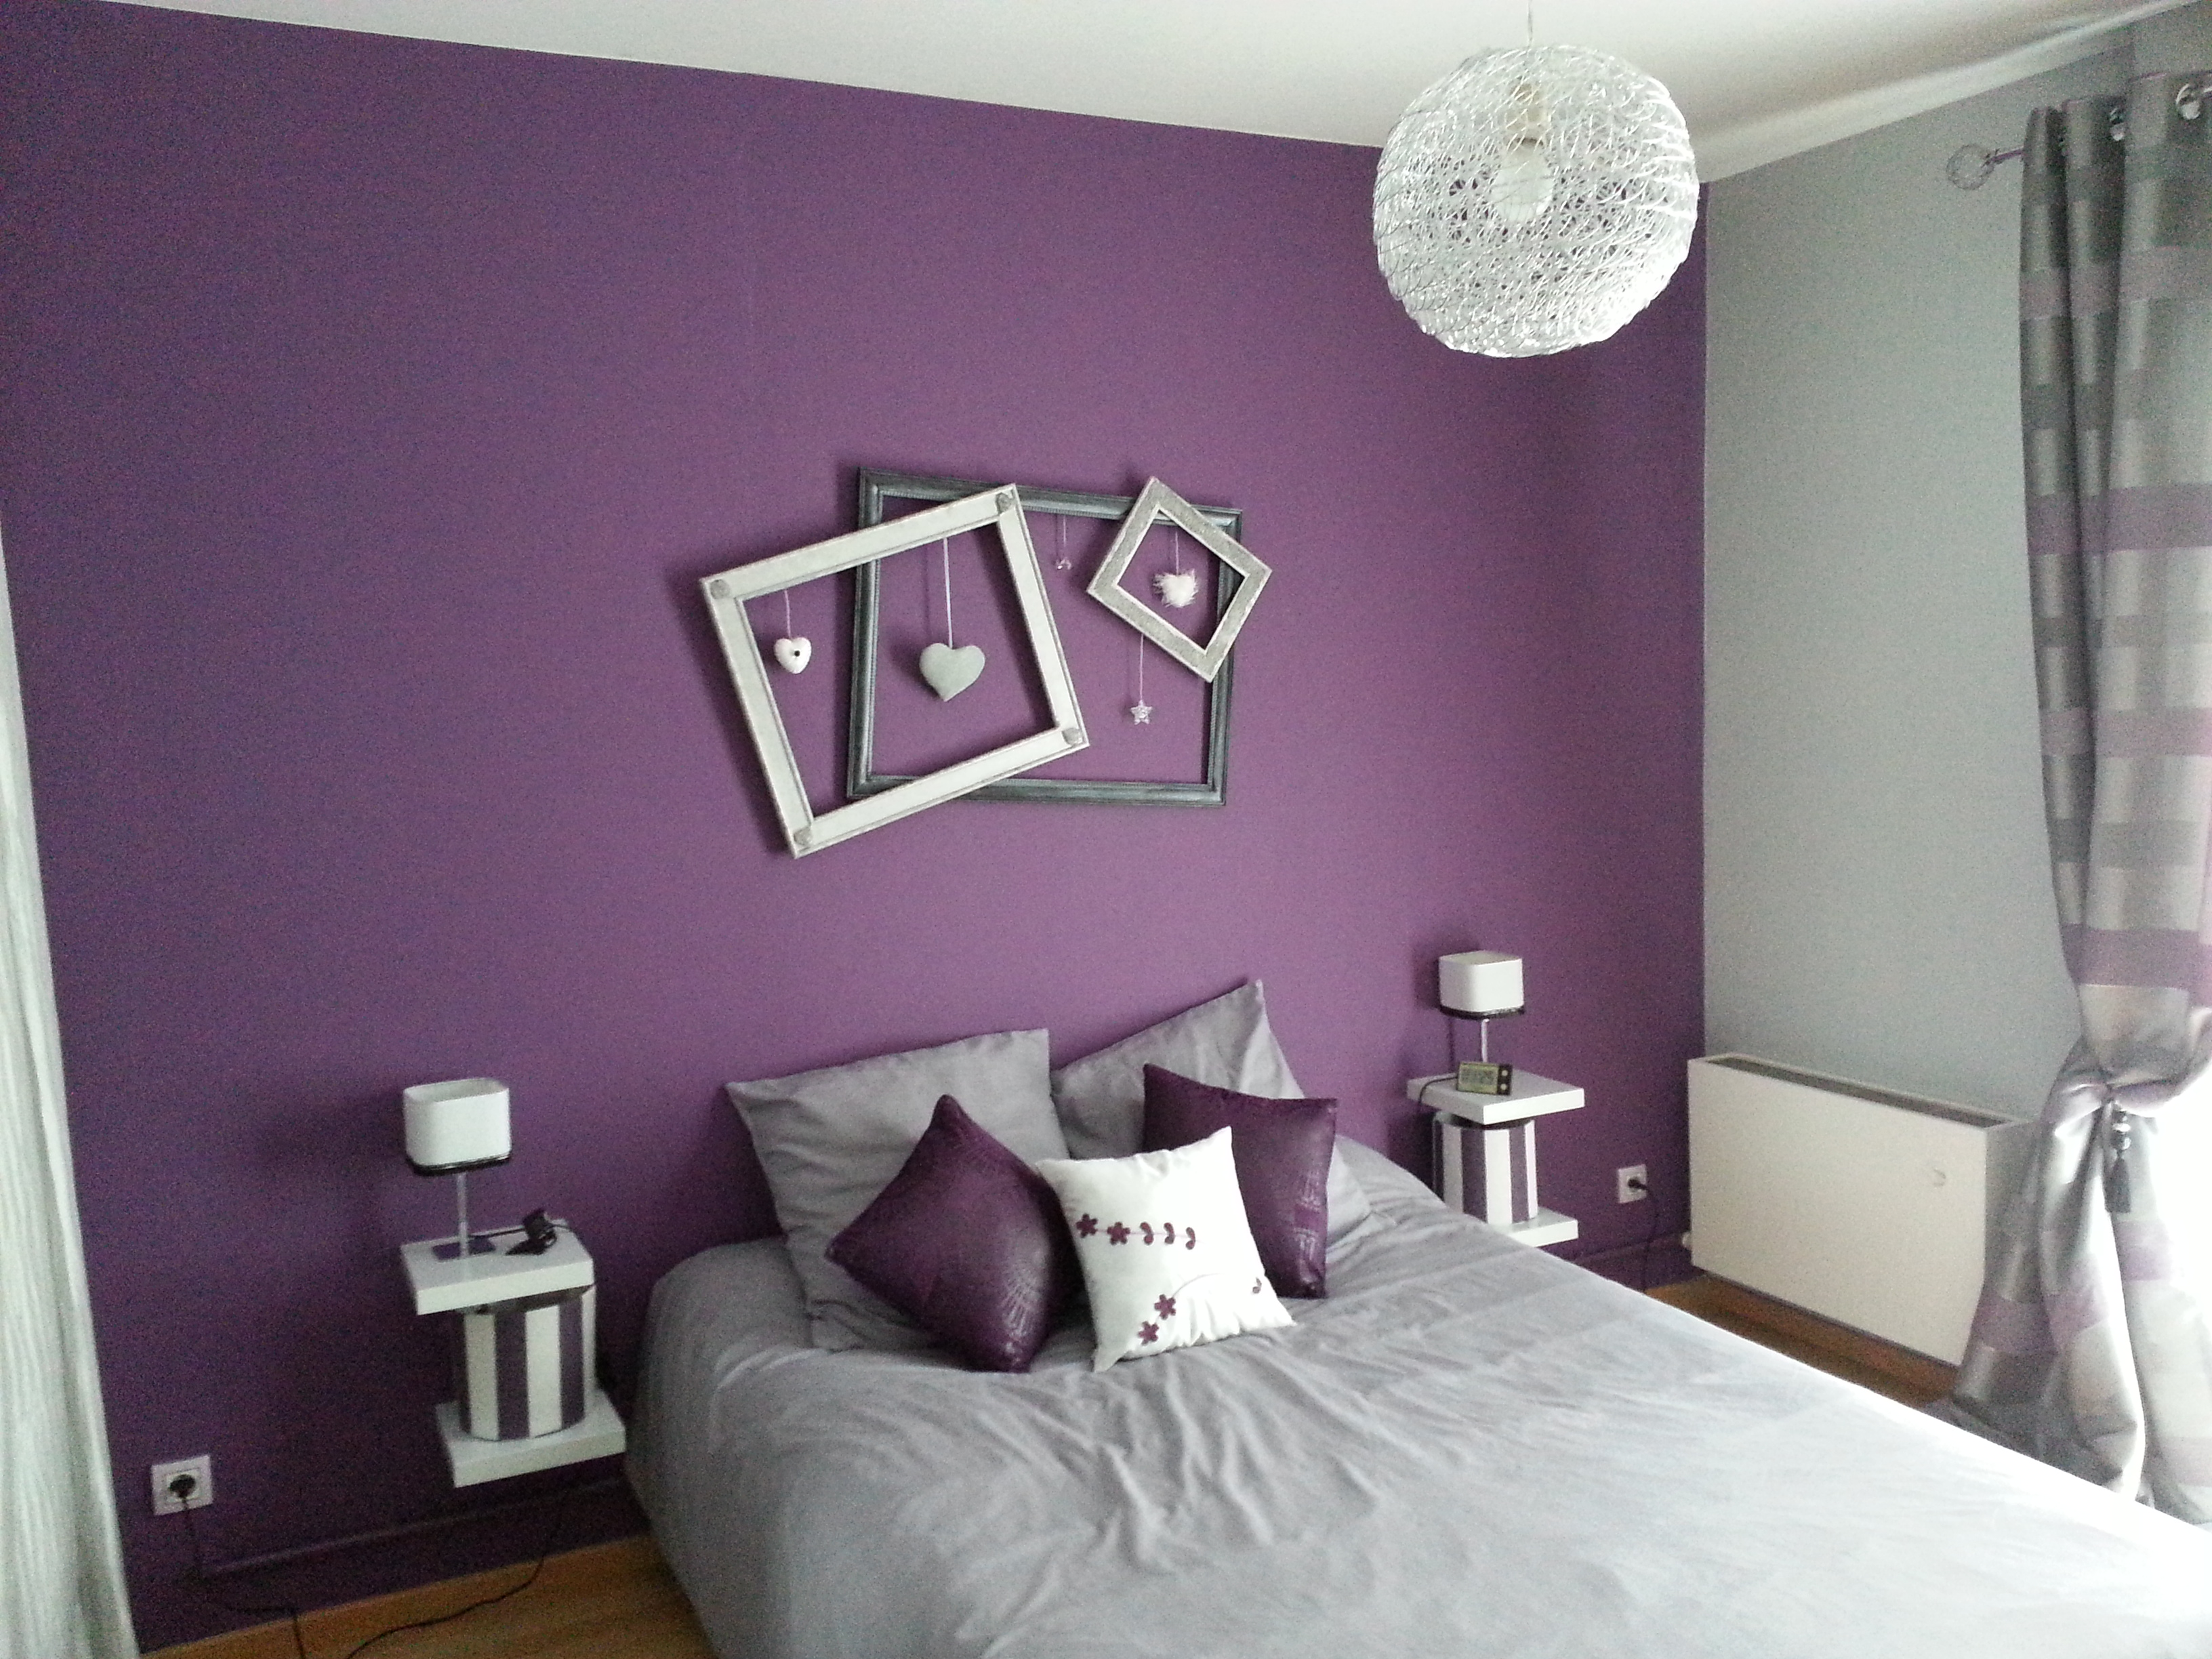 Photo decoration d co cuisine violet gris - Deco violet et gris ...